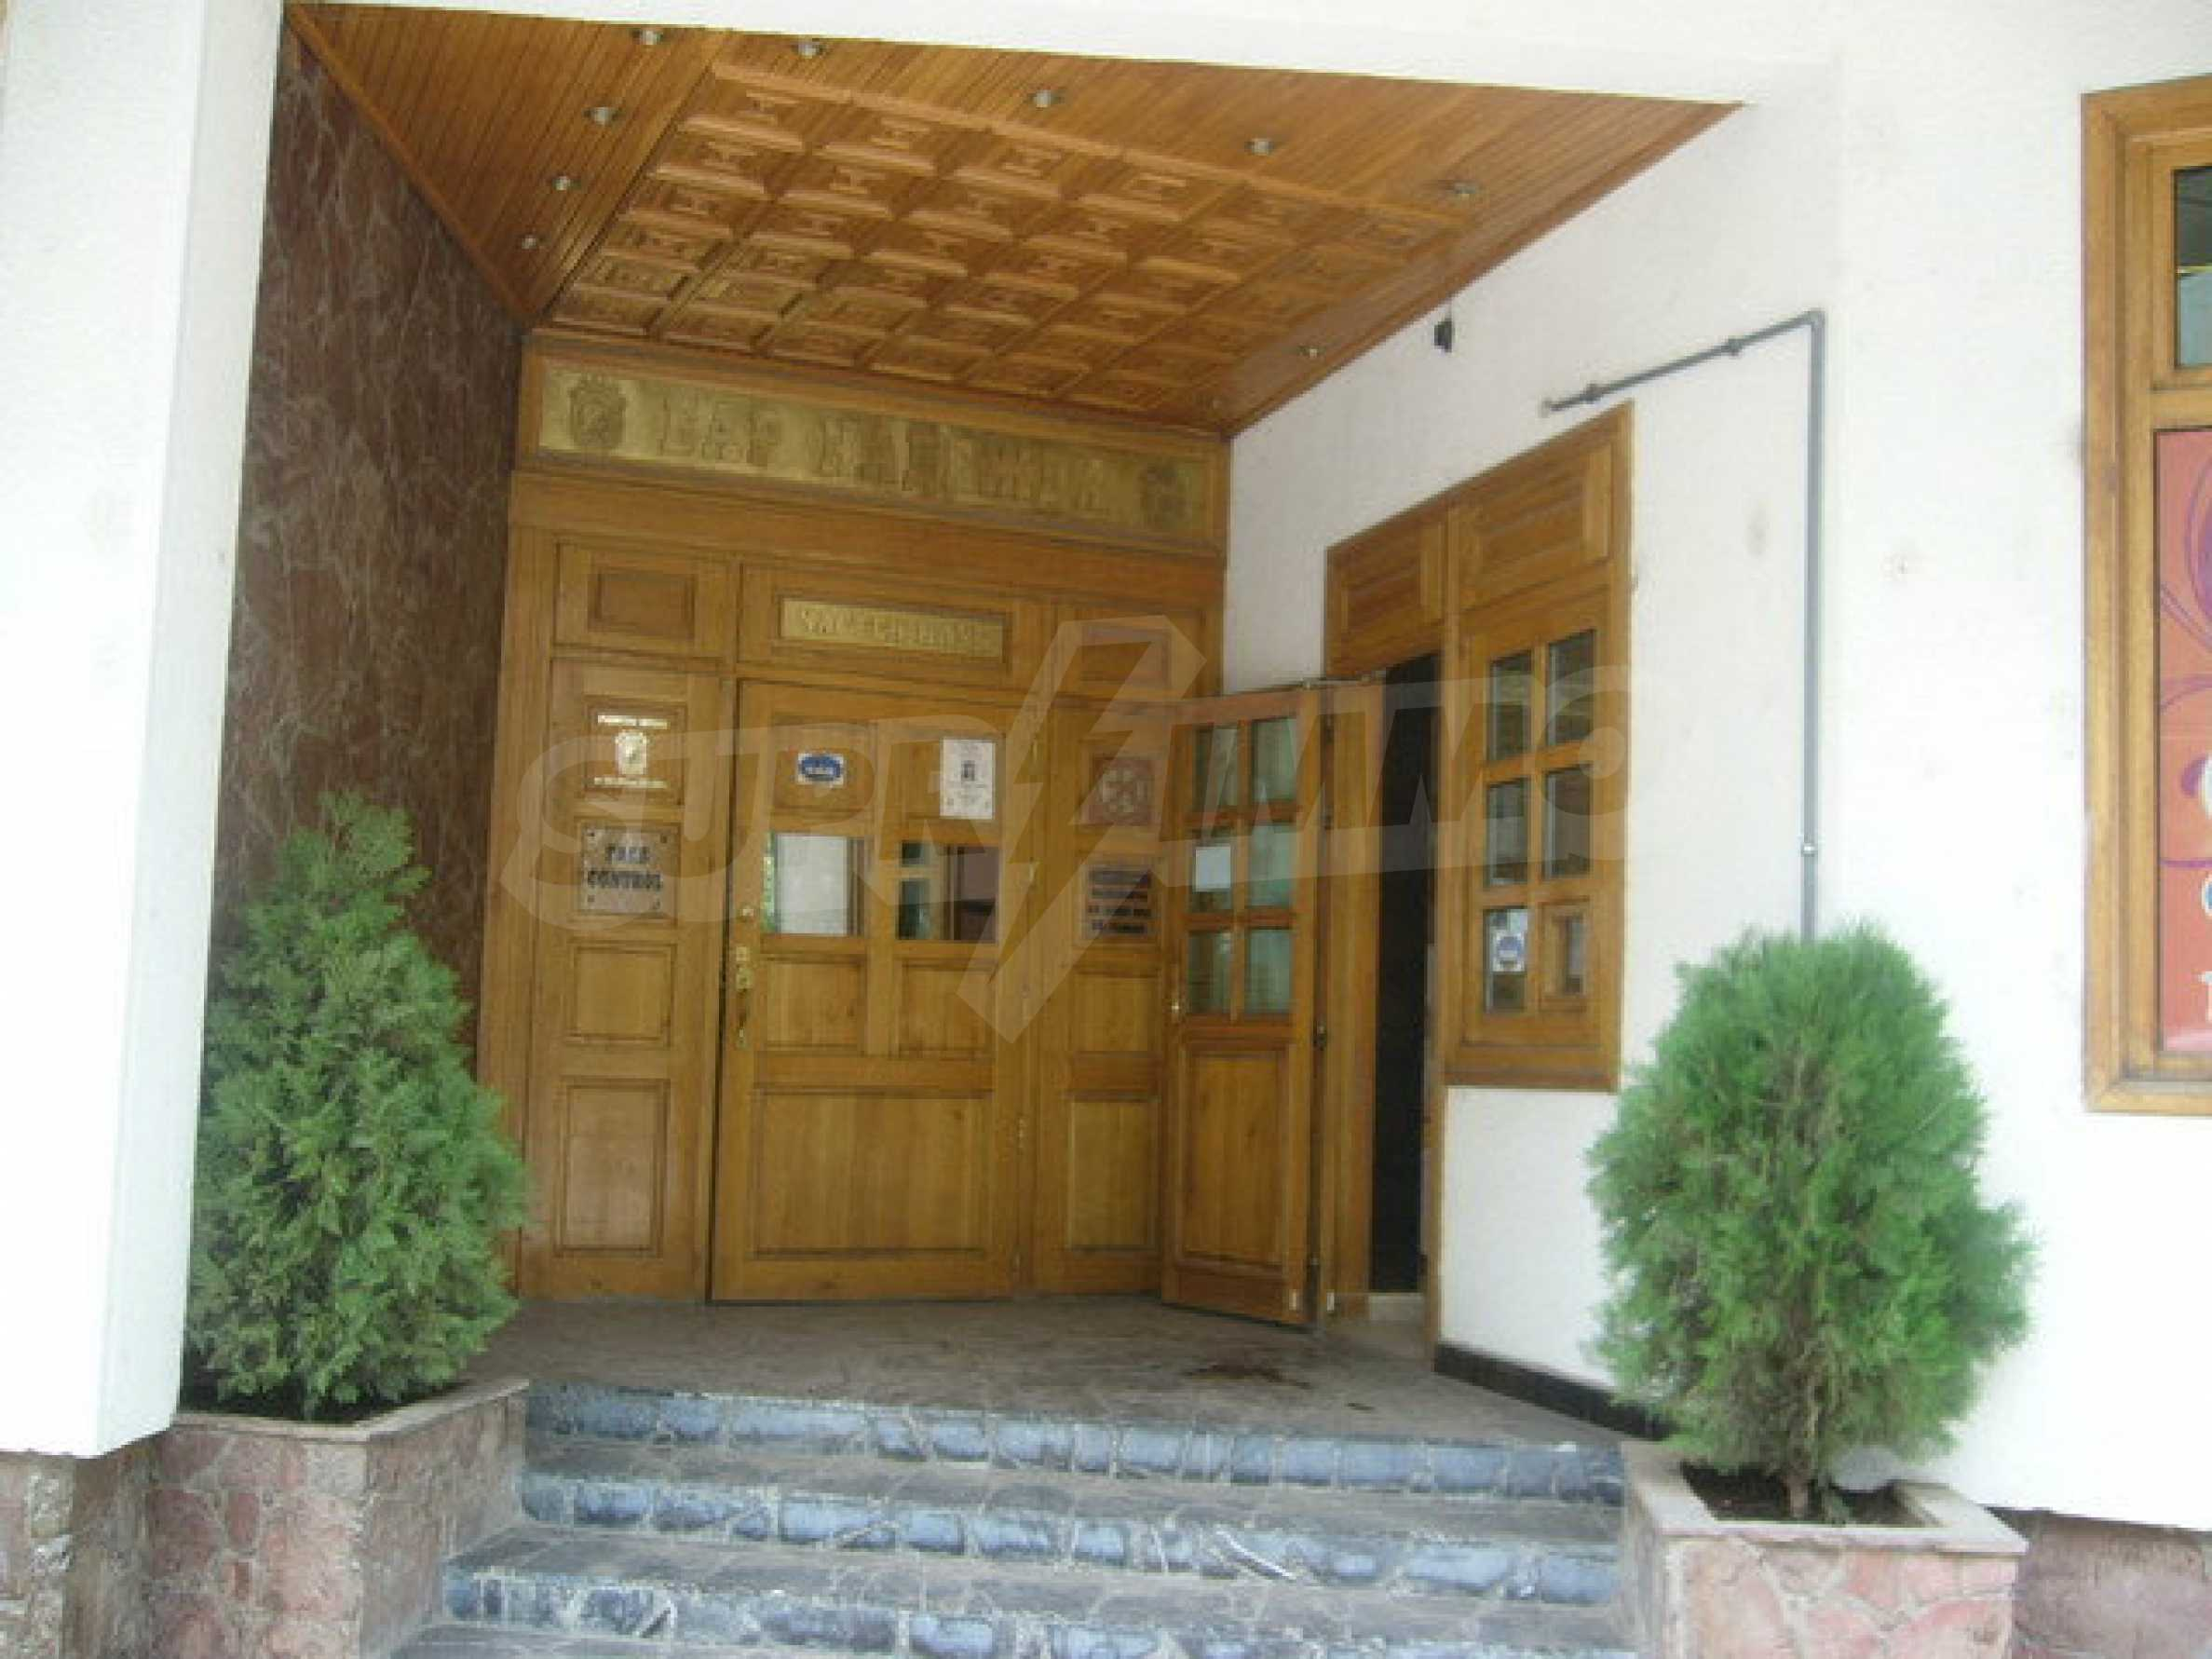 Commercial property on 3 levels for sale in Veliko Tarnovo  48